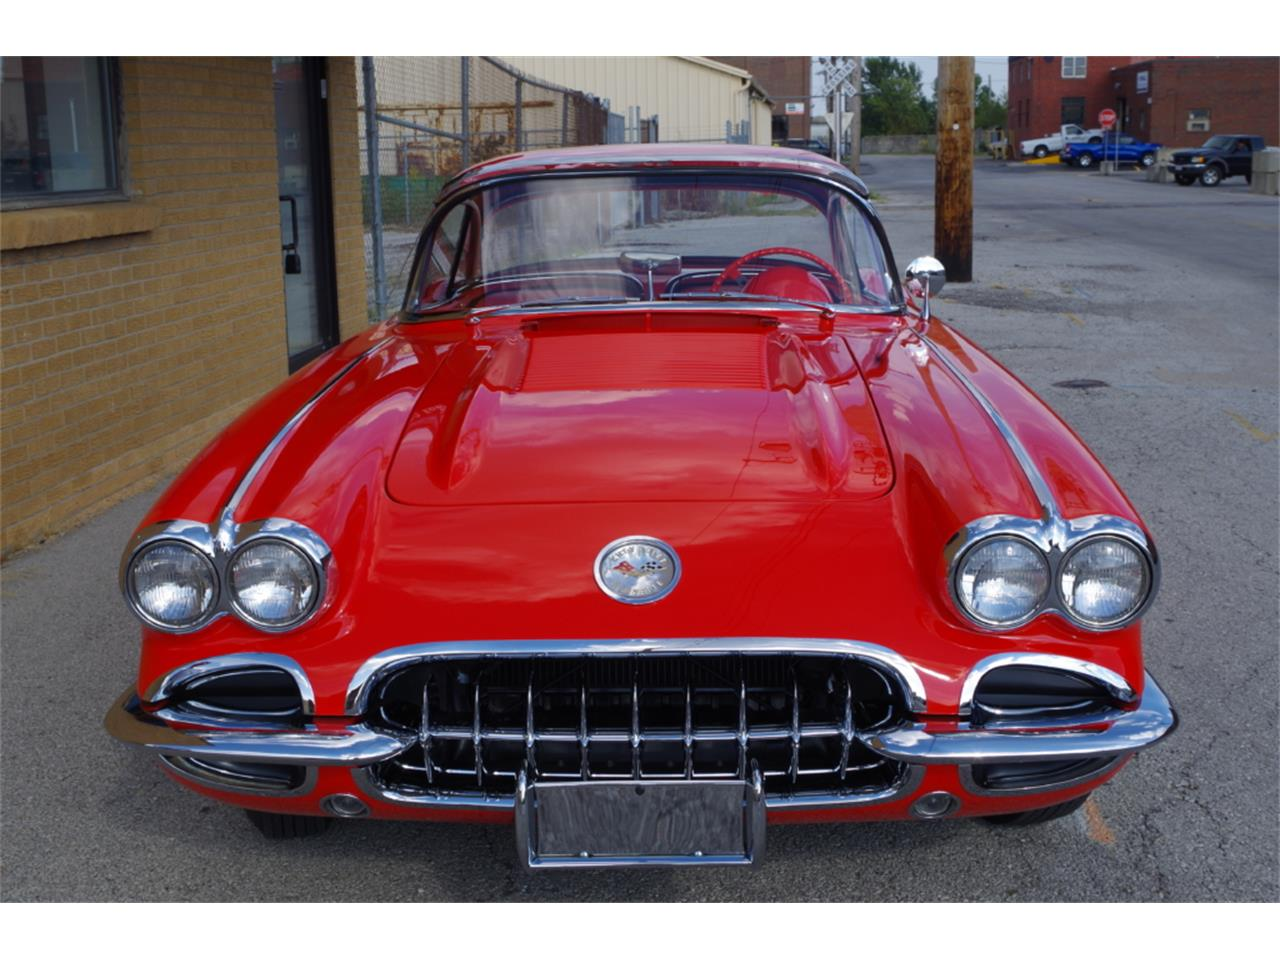 Large Picture of Classic '58 Corvette located in N. Kansas City Missouri - $139,900.00 - R23F